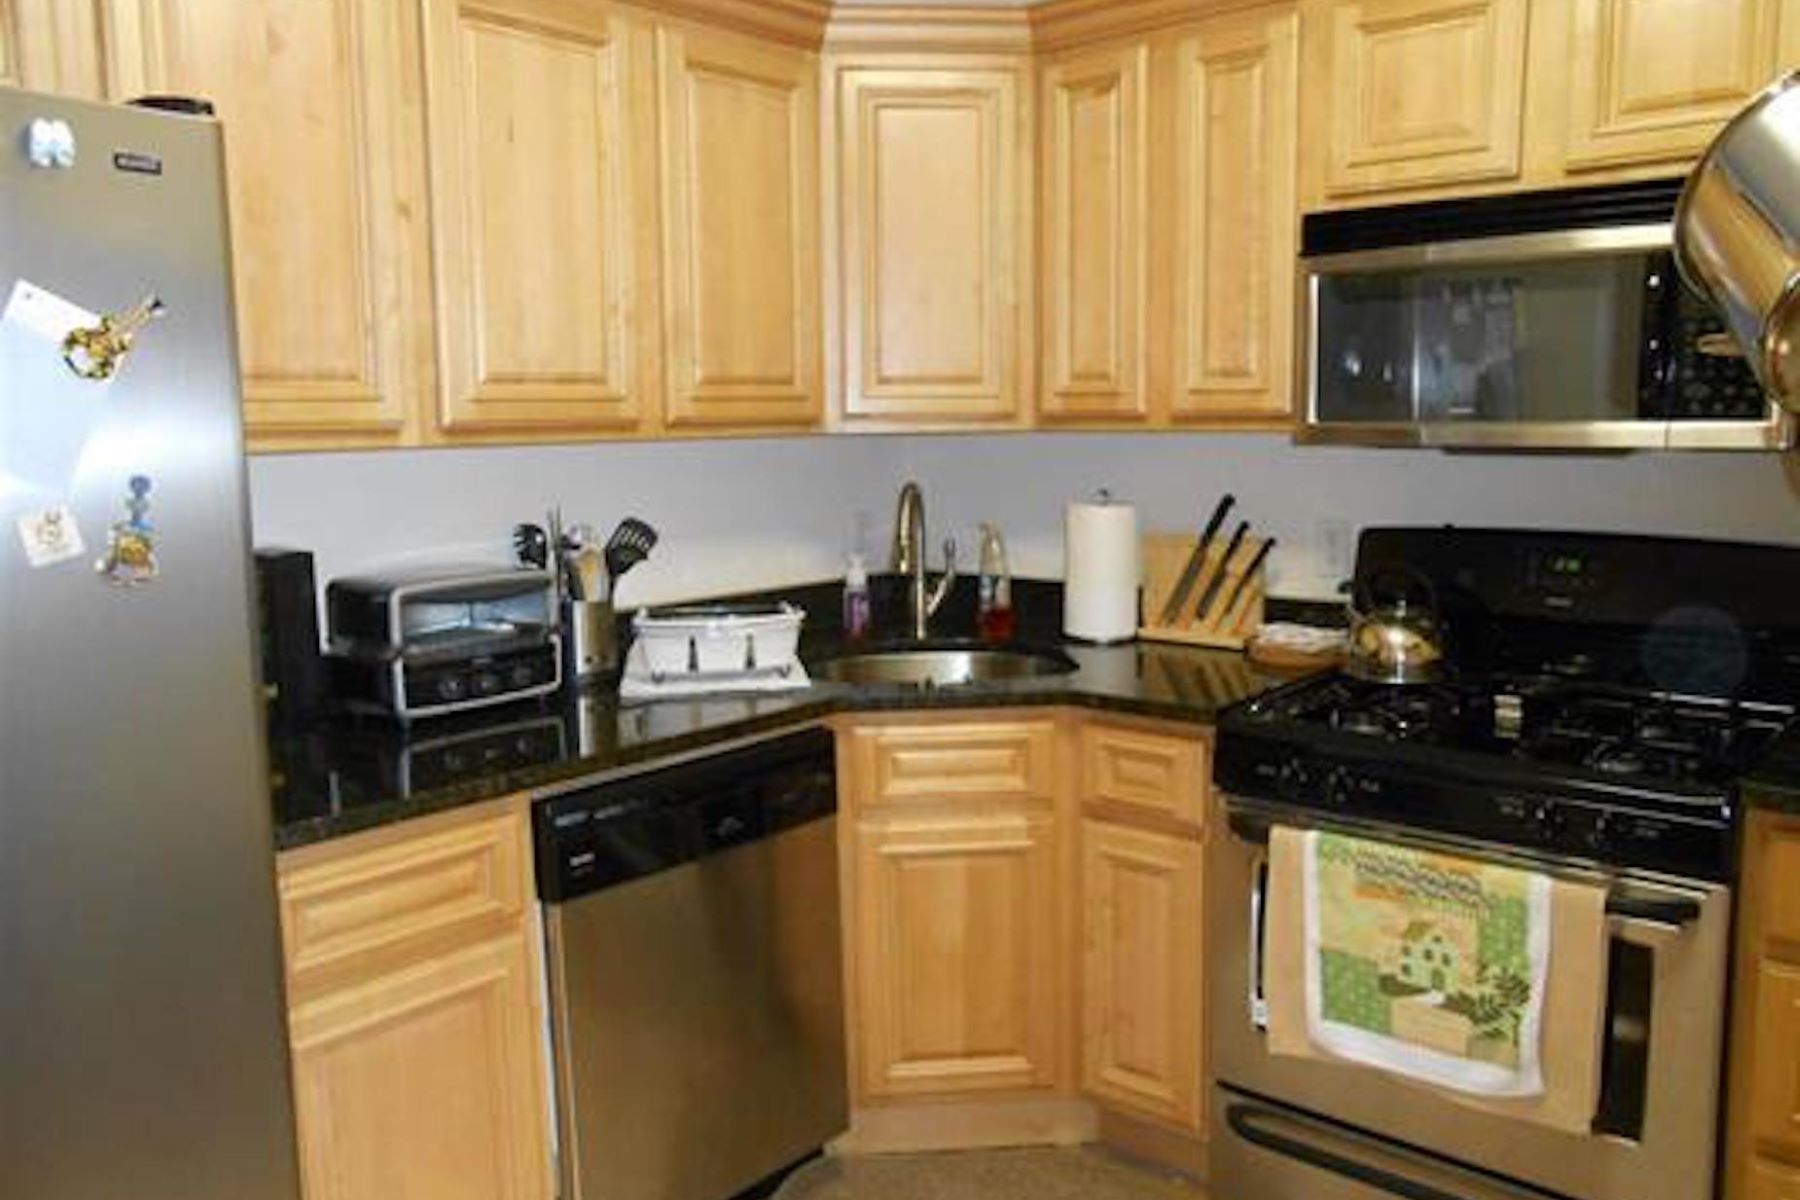 Single Family Homes vì Bán tại This Enchanting 2 bedroom, 2 bath home in the heart of Union City 605 New York Ave #303, Union City, New Jersey 07087 Hoa Kỳ